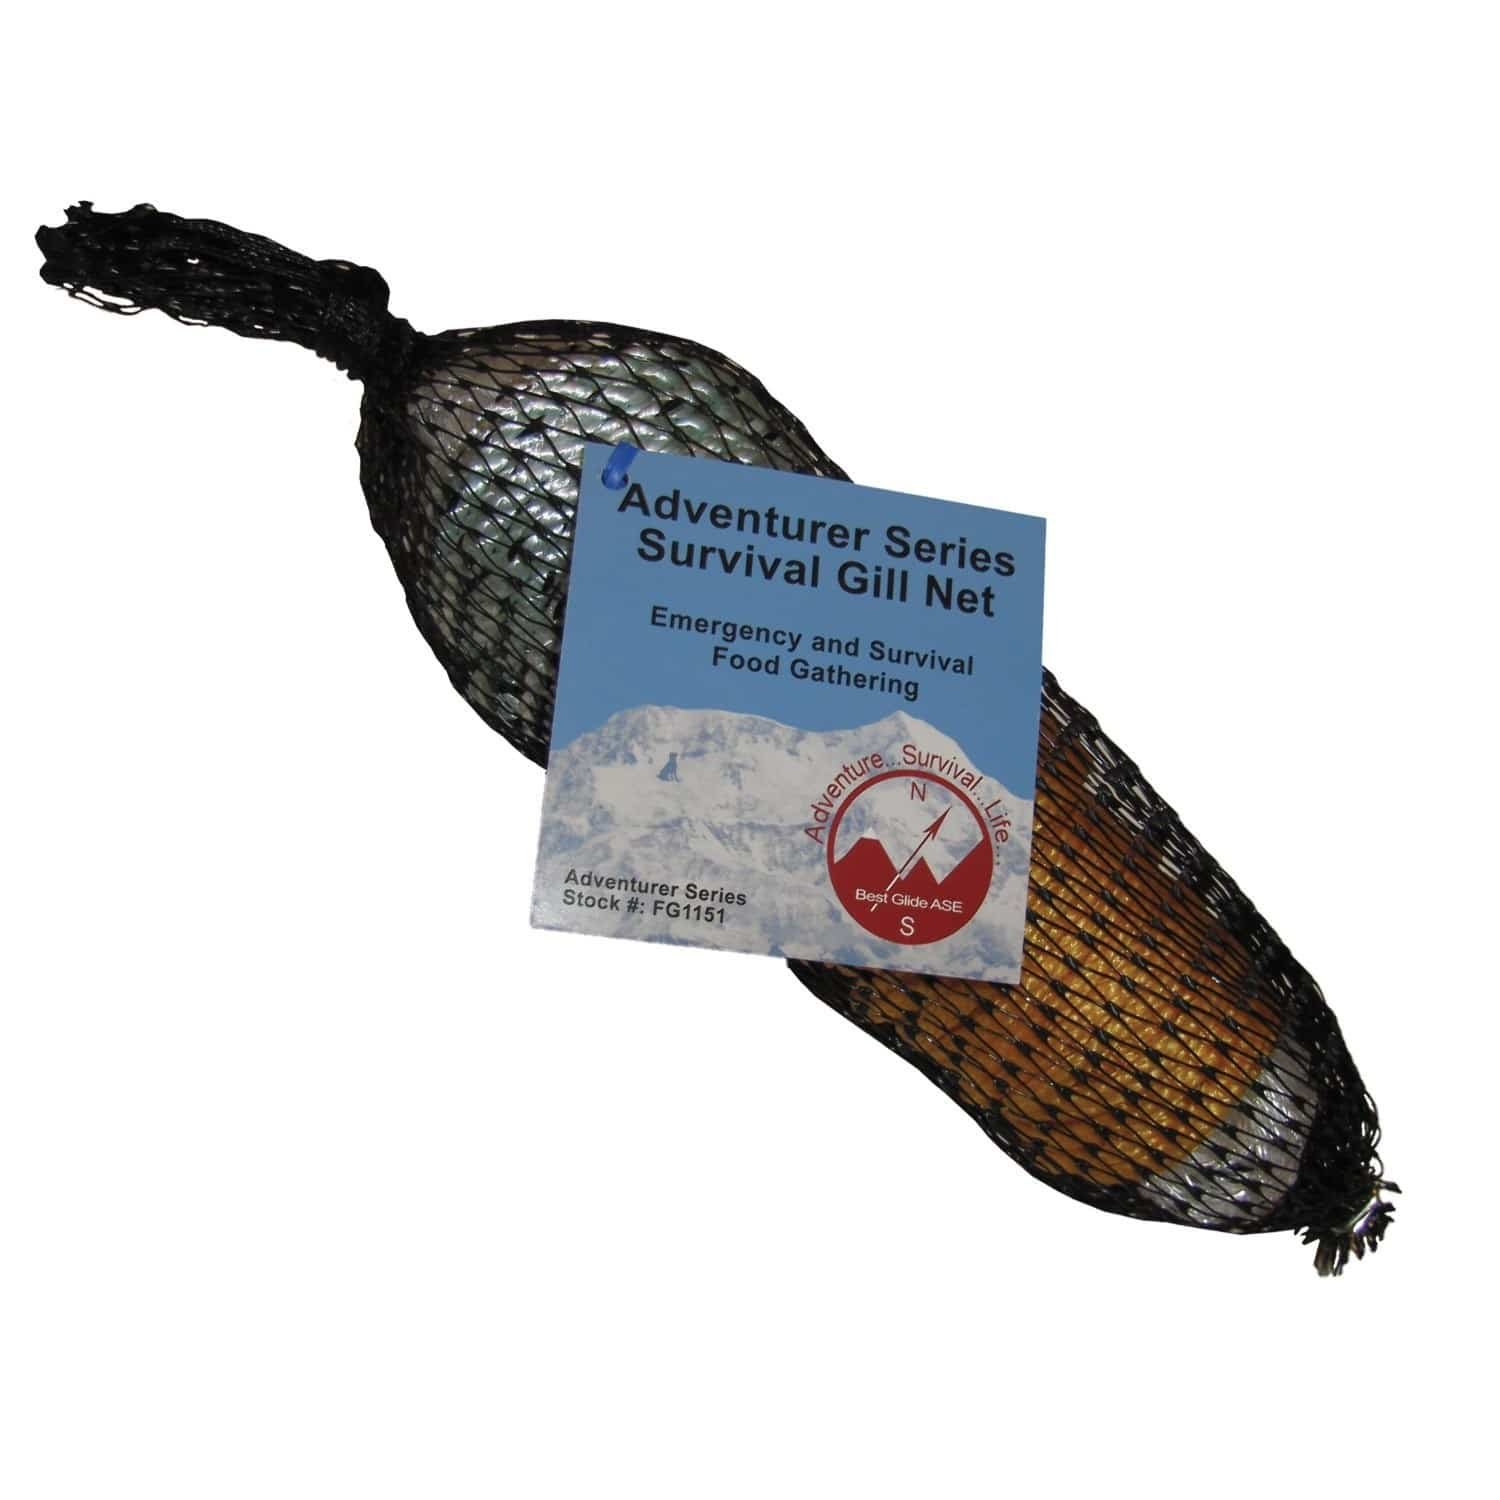 Gill Nets Are A Great Food Gathering Tool For Preppers